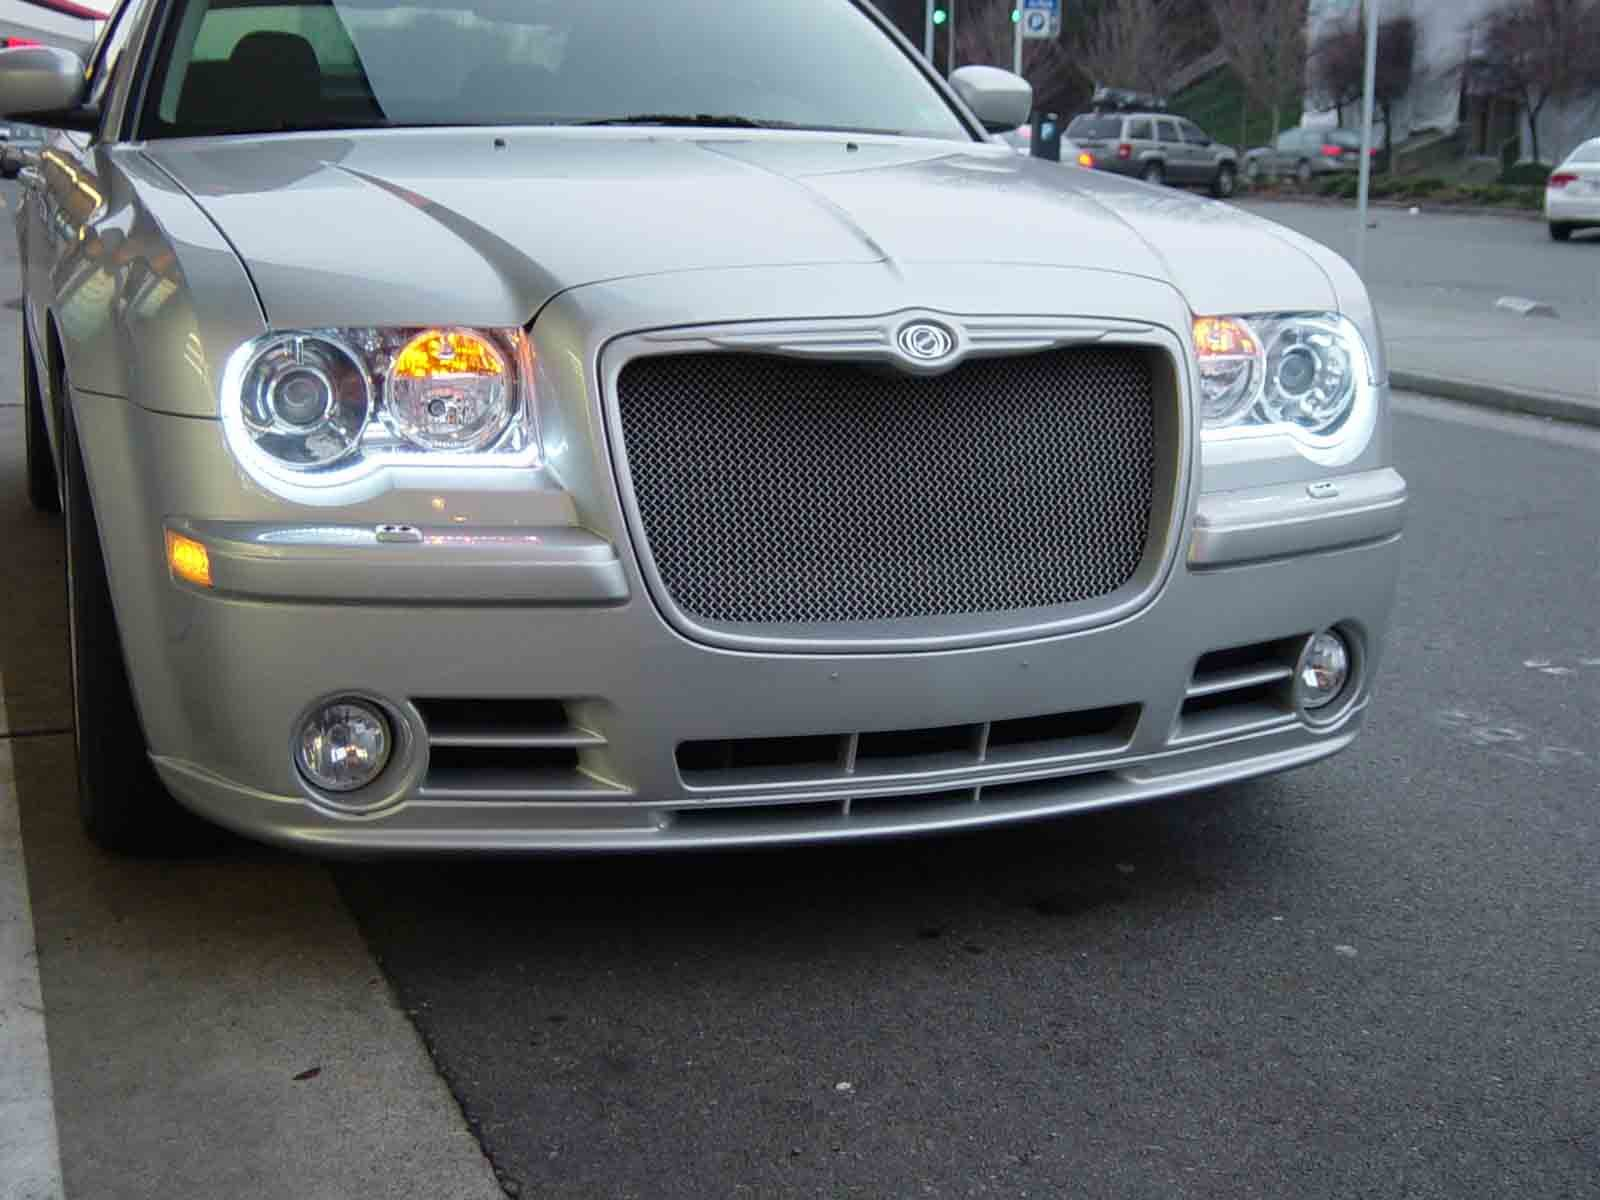 """LED """"Audi"""" style daytime running lights on a 300 ..."""